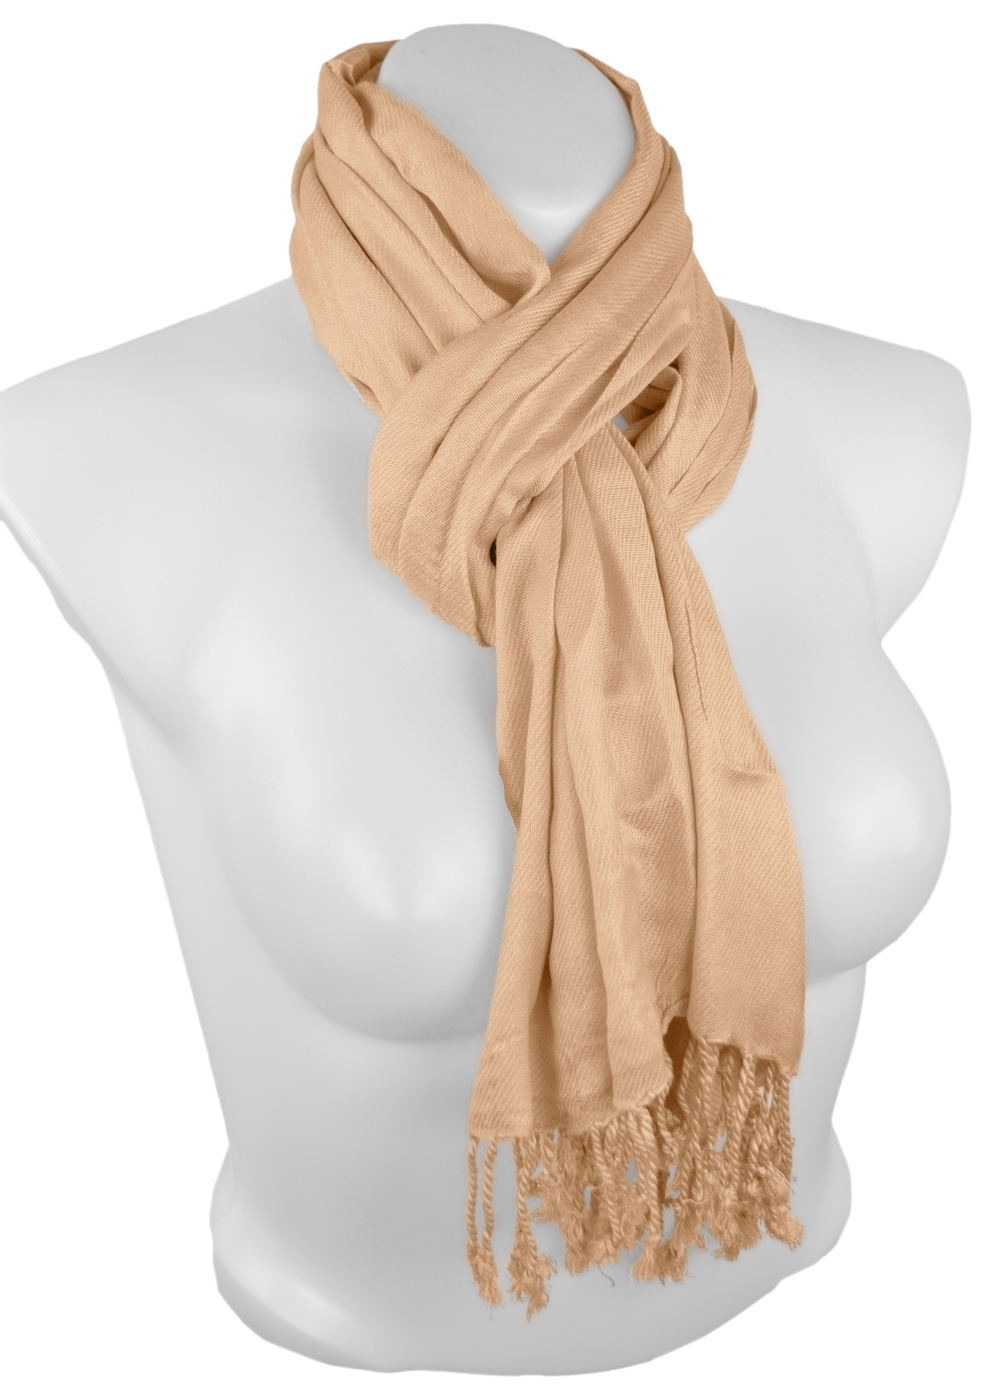 Belle Donne - Women's Pashmina Scarf Solid Color Scarves - Orange